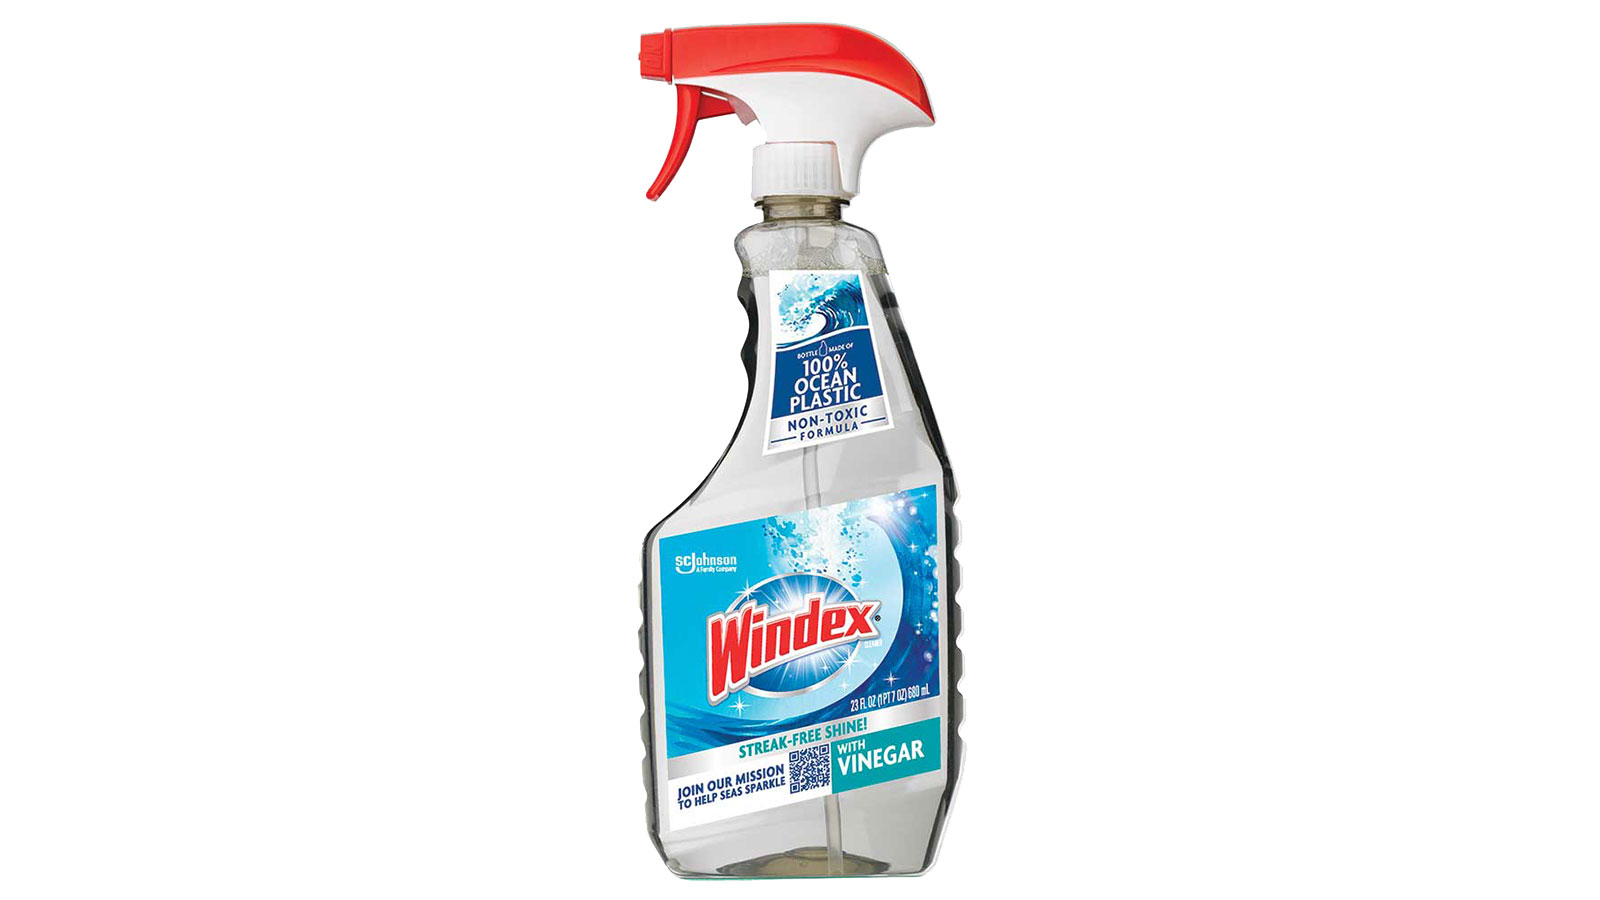 windex ocean plastic recycled bottle